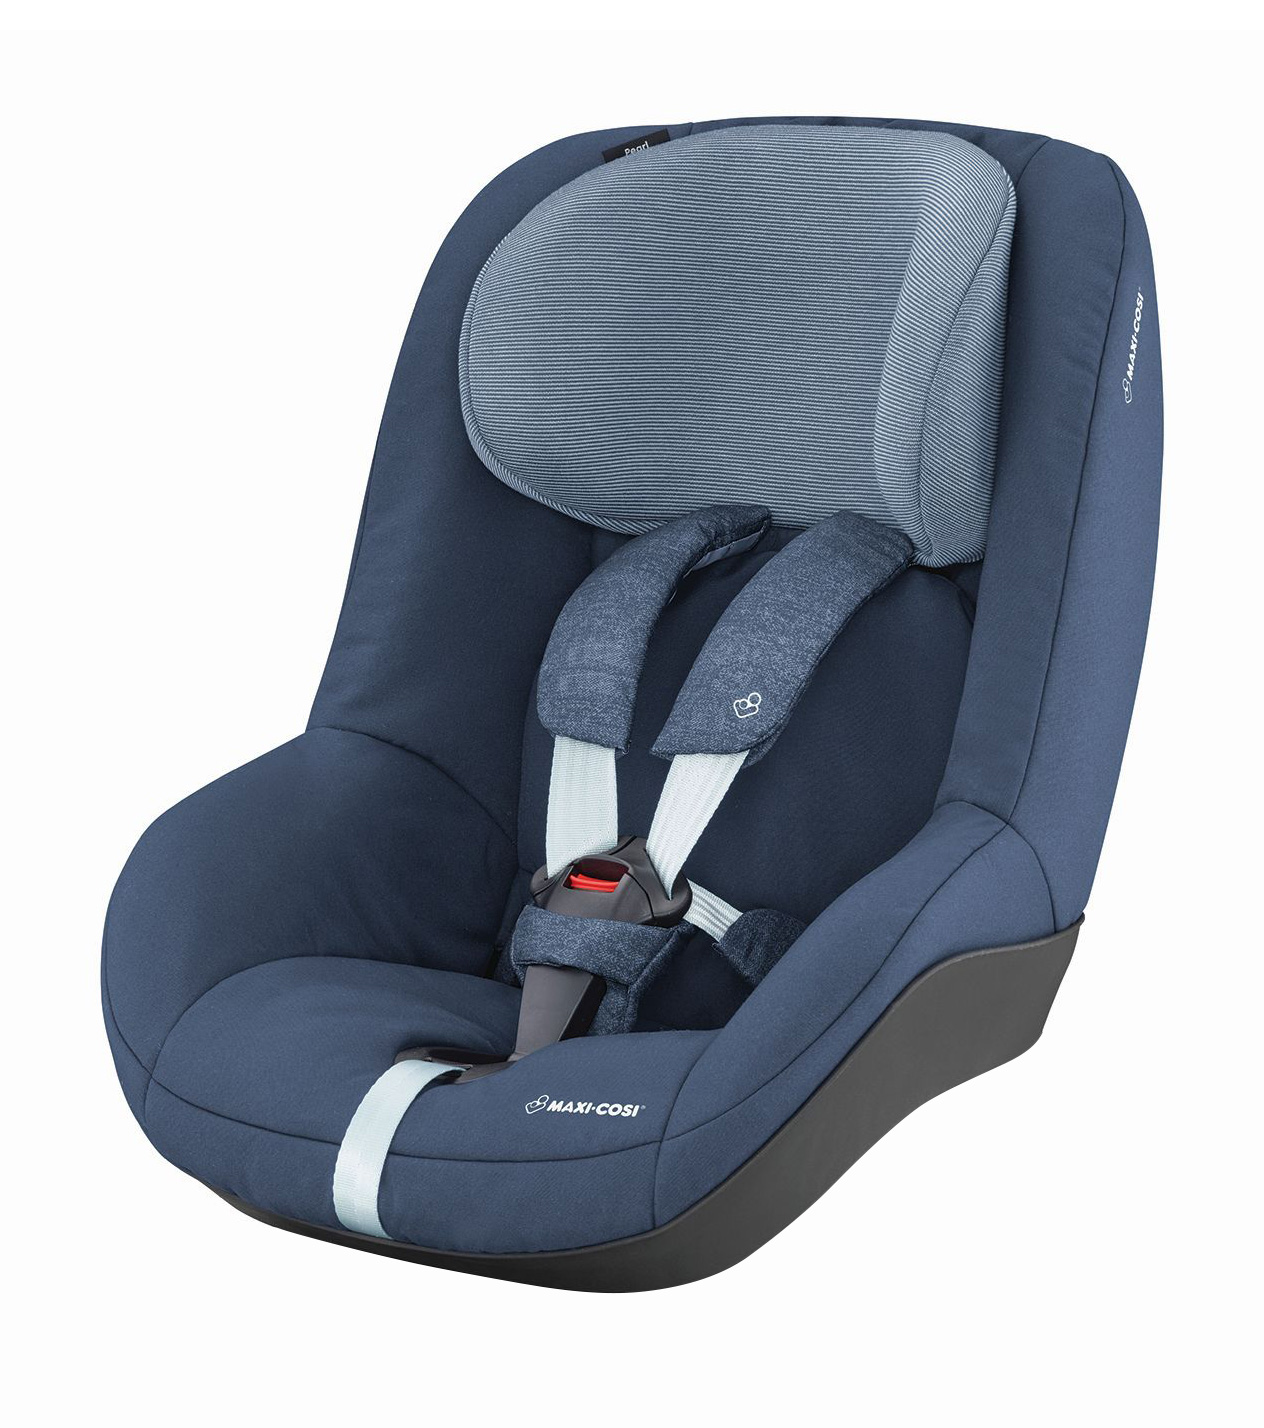 Maxi cosi child car seat pearl 2018 nomad blue buy at for Maxi cosi housse